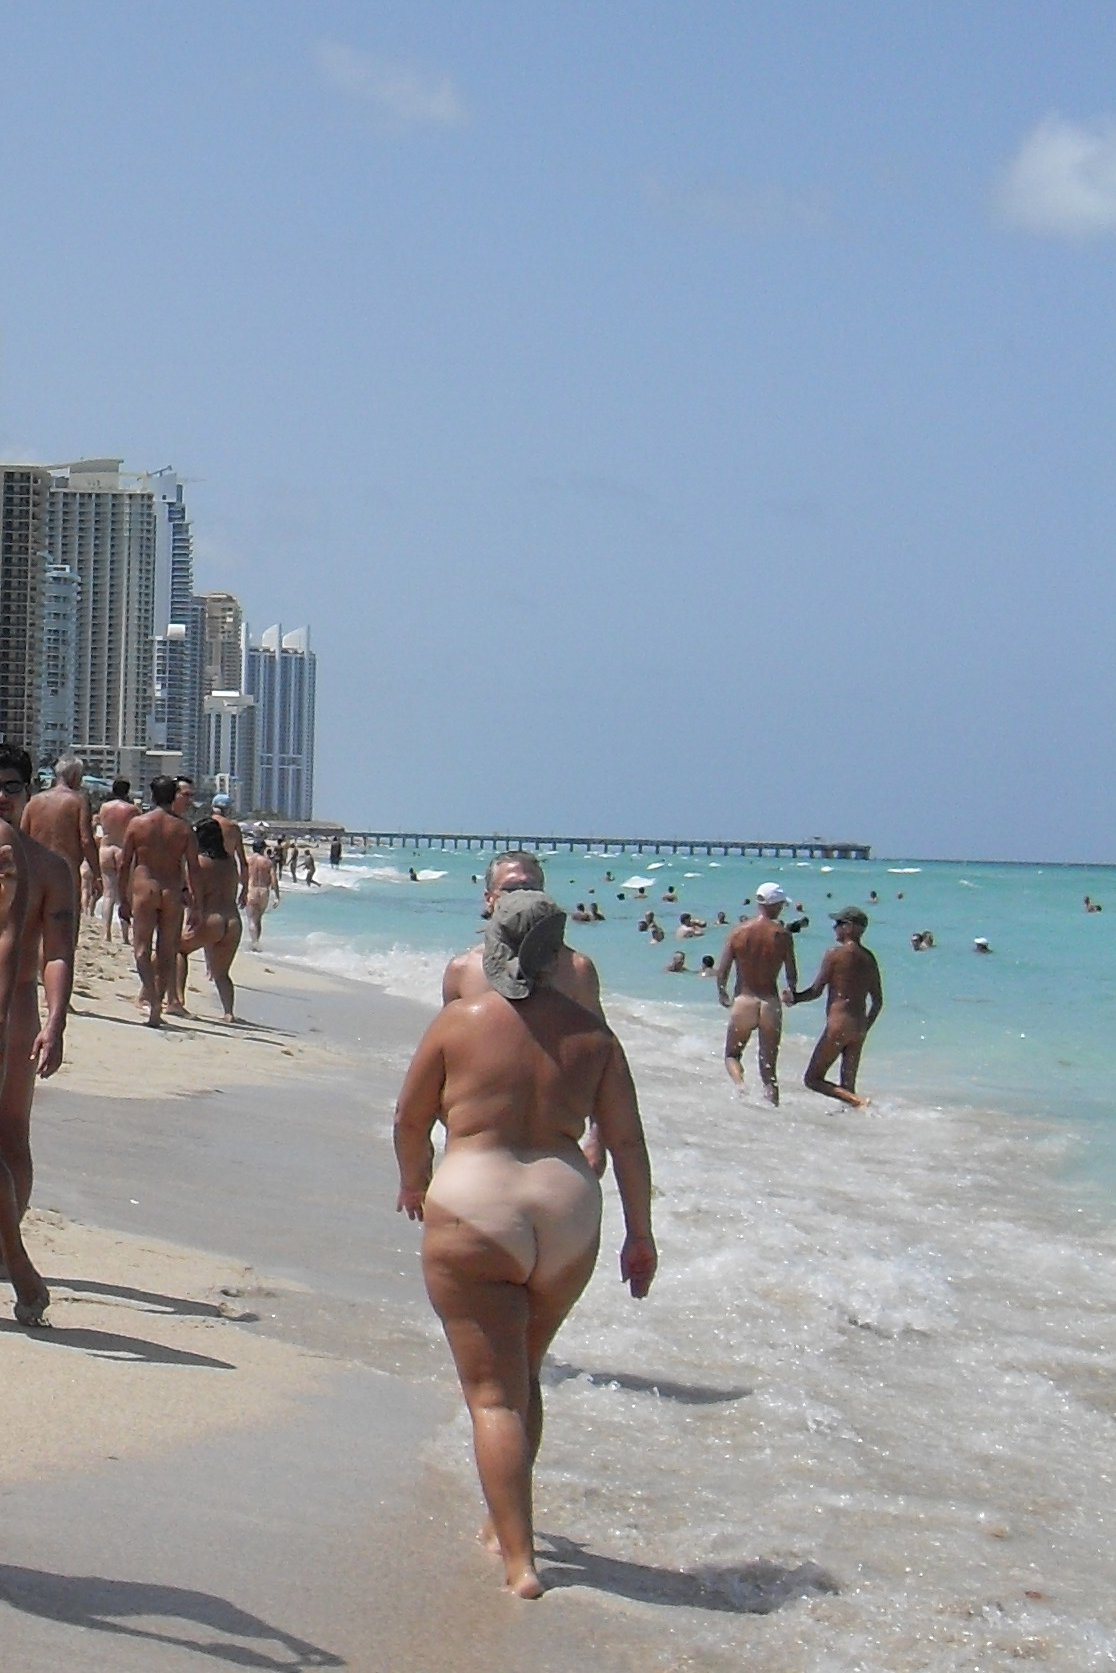 Nude beach haulover miami spread legs — pic 1